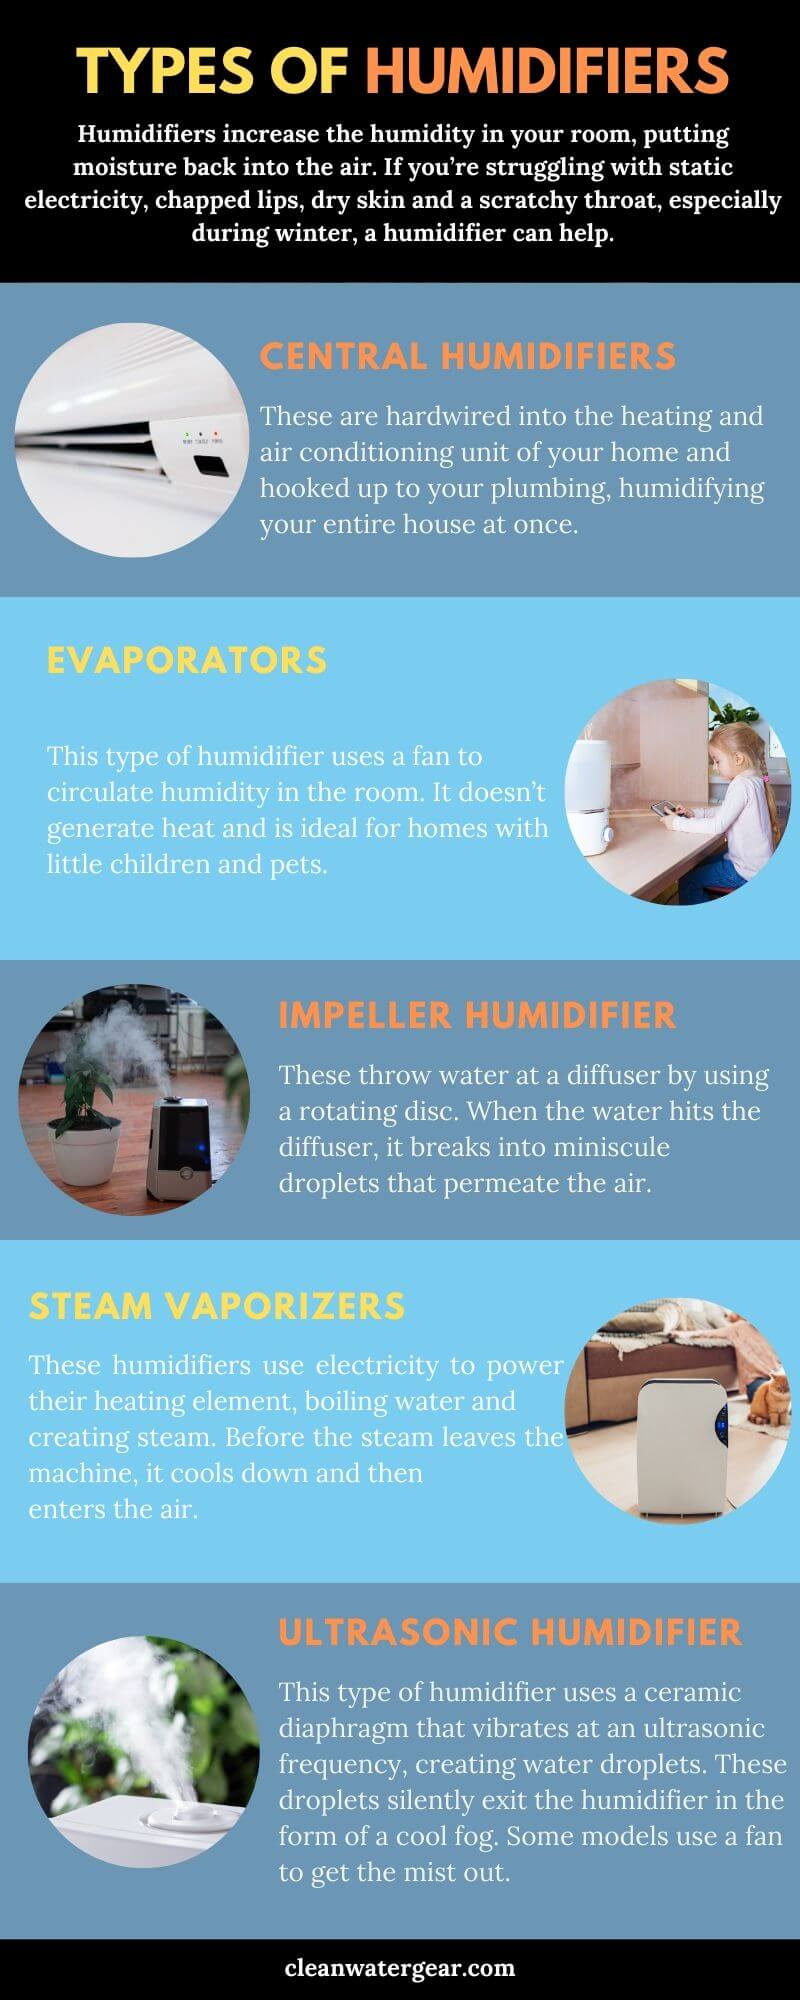 Types of humidifiers explained